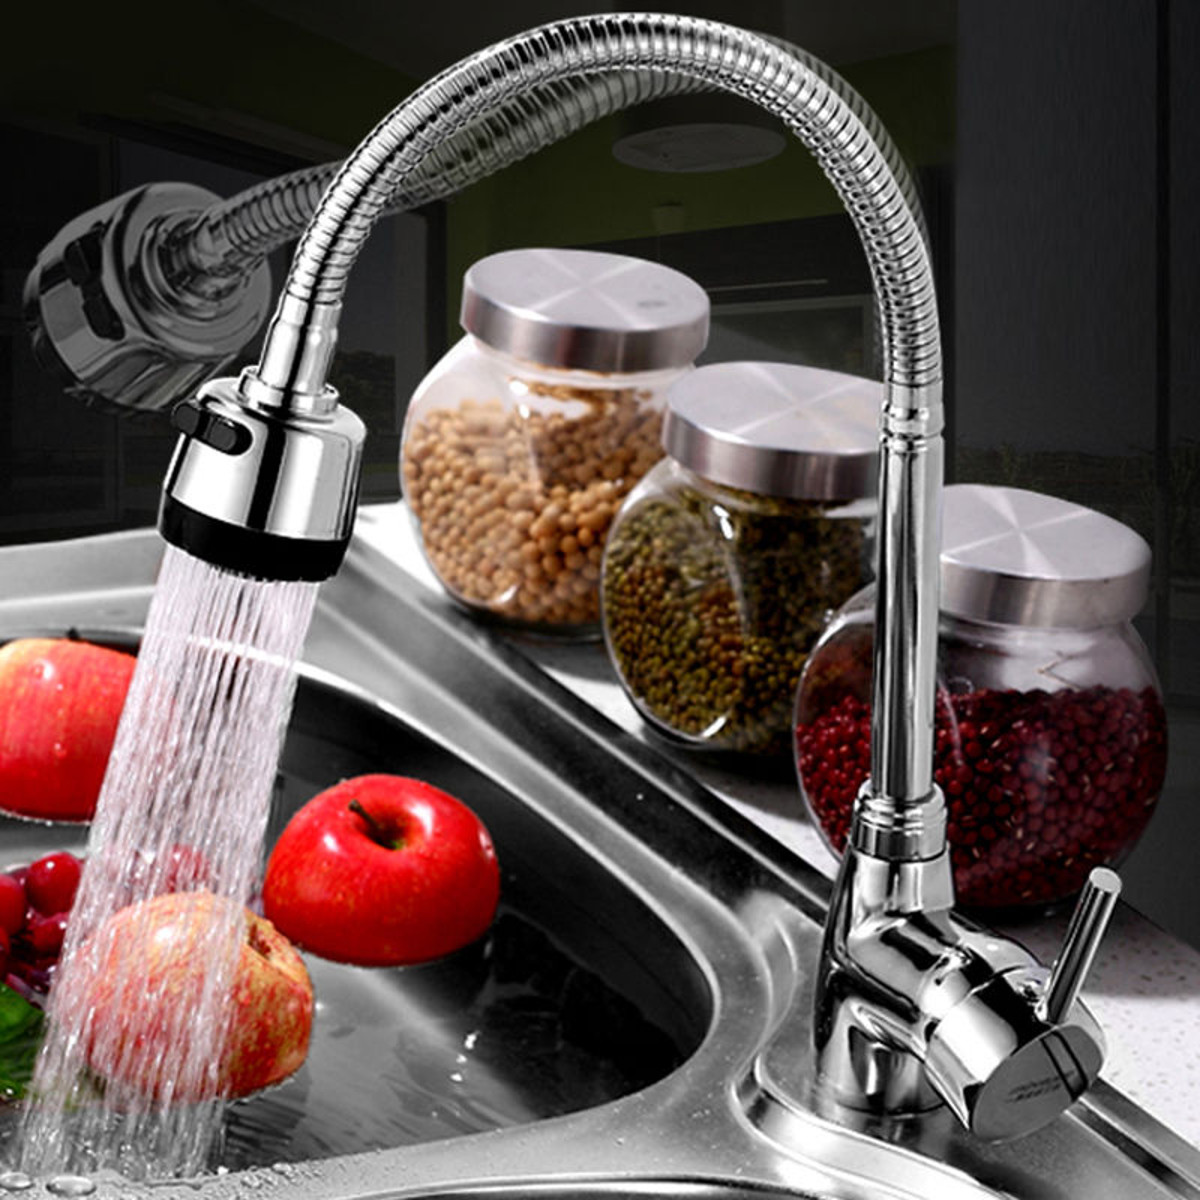 Kitchen 360Degree Rotatable Pull Down Spray Mixer Tap Spout Single Handle Sink Basin Faucet Adjustable Solid Brass Deck Mounted